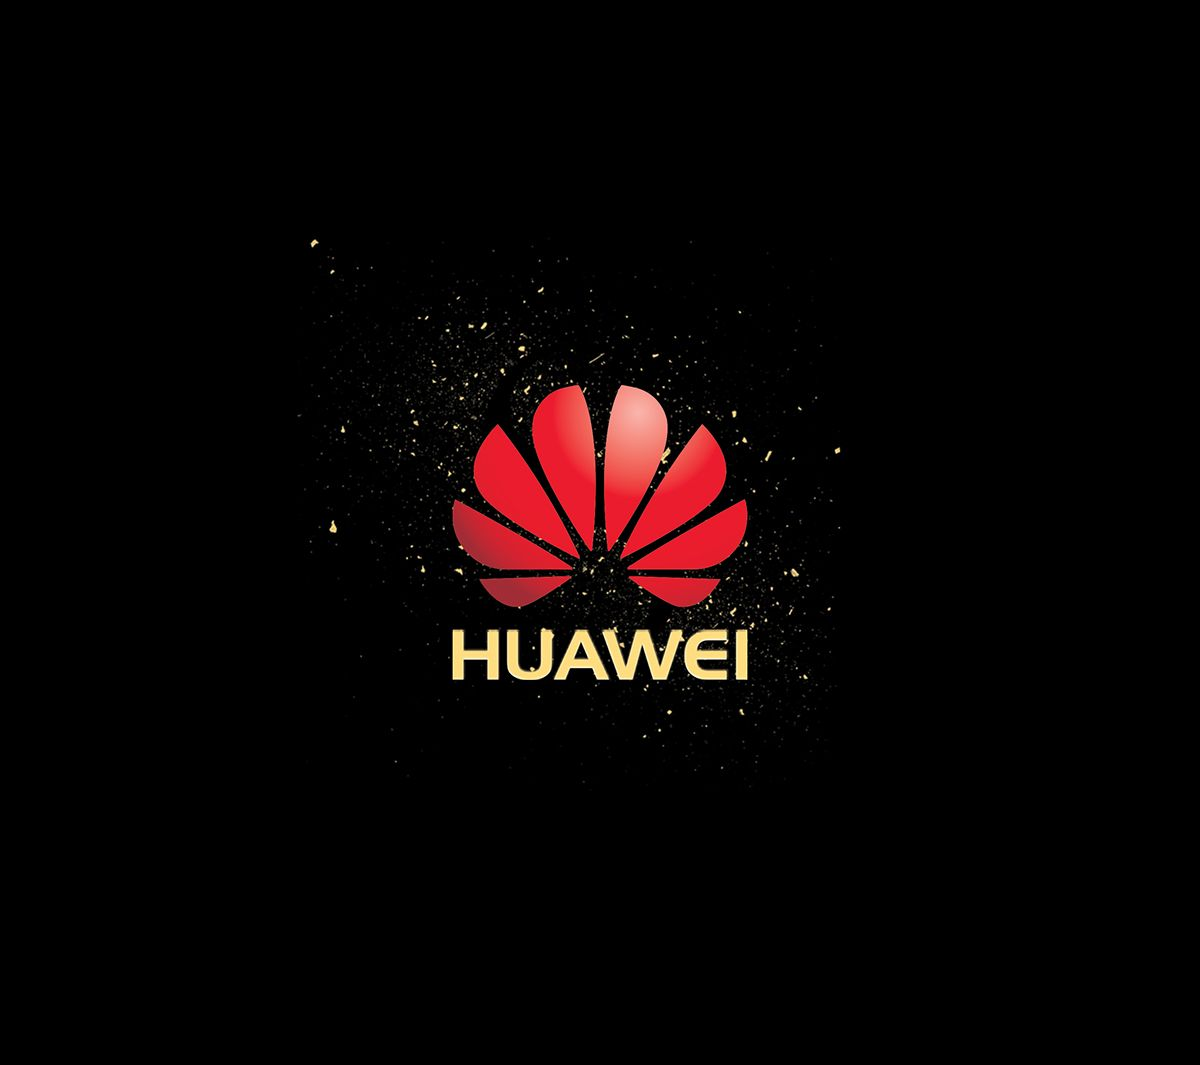 New Smartphone Wallpaper: Huawei Mate 8. Outdoor Launch Event Concept. On Behance